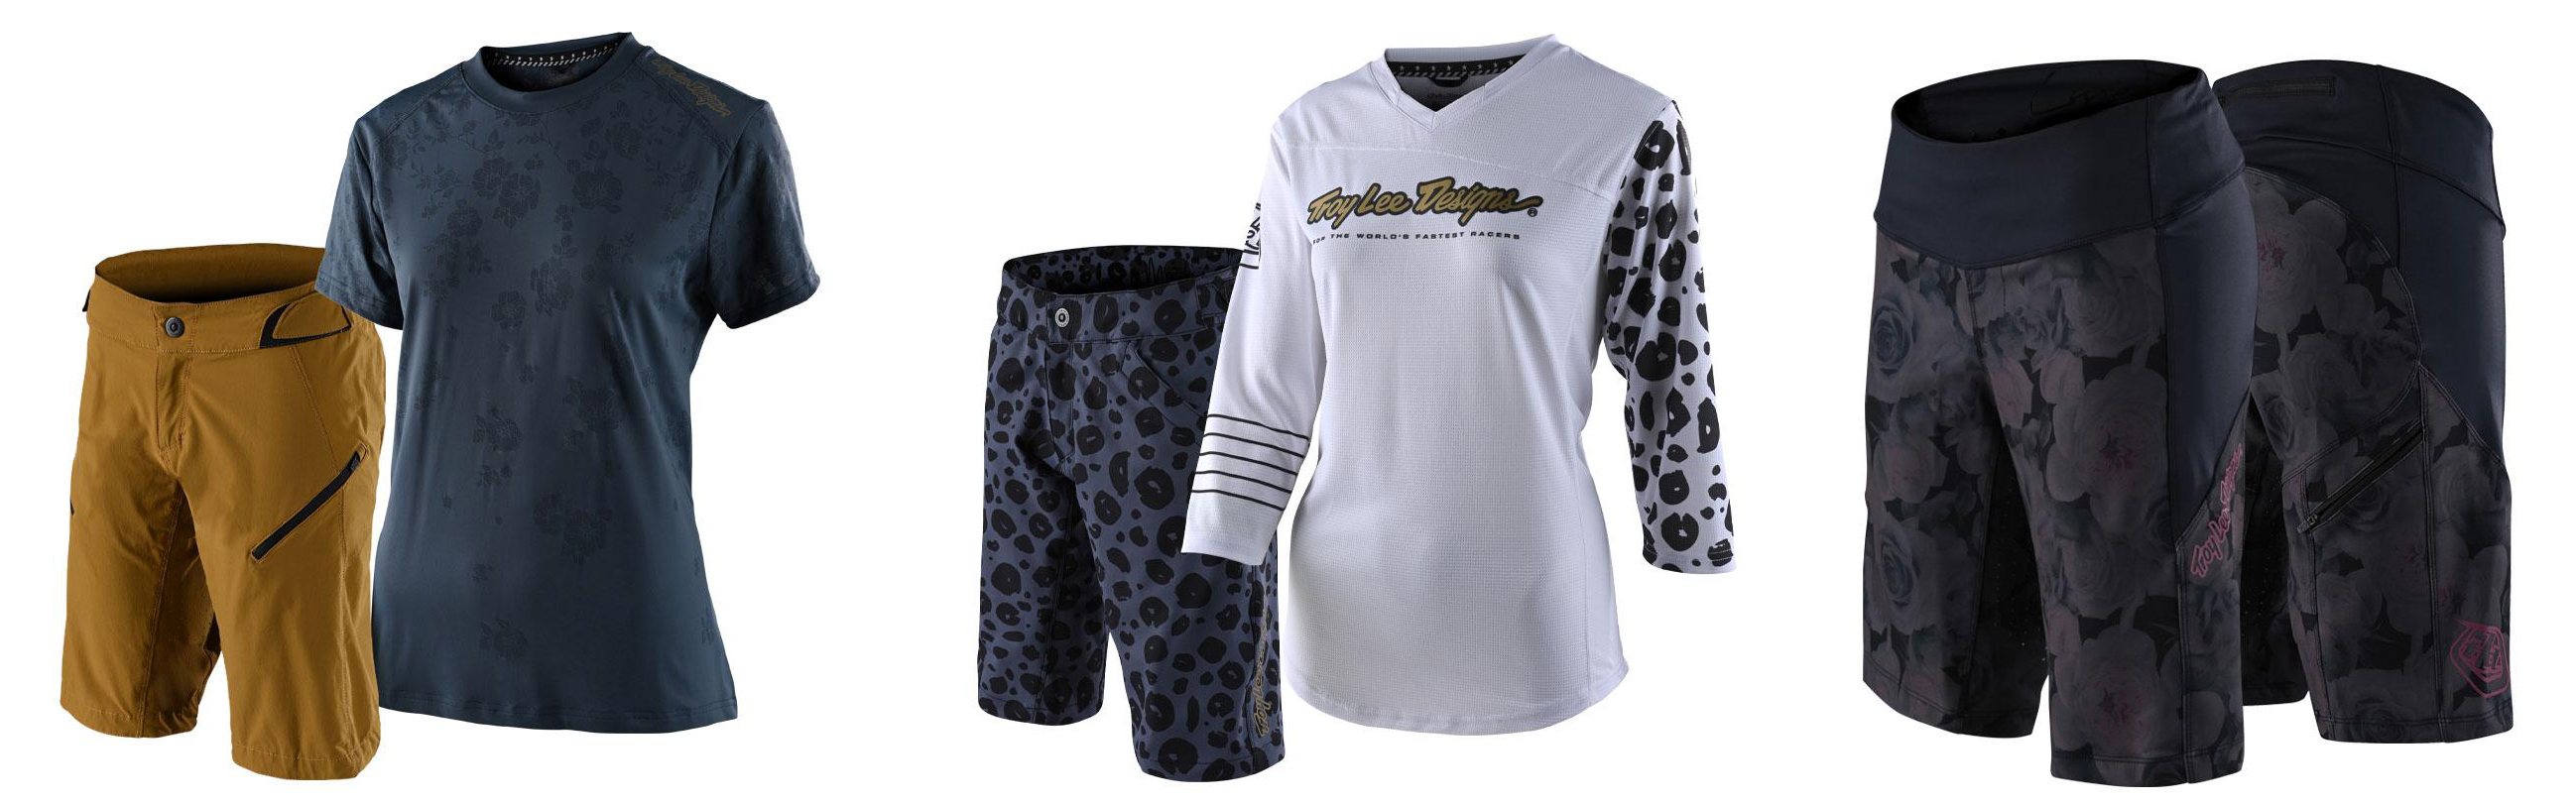 Troy Lee mountain bike apparel